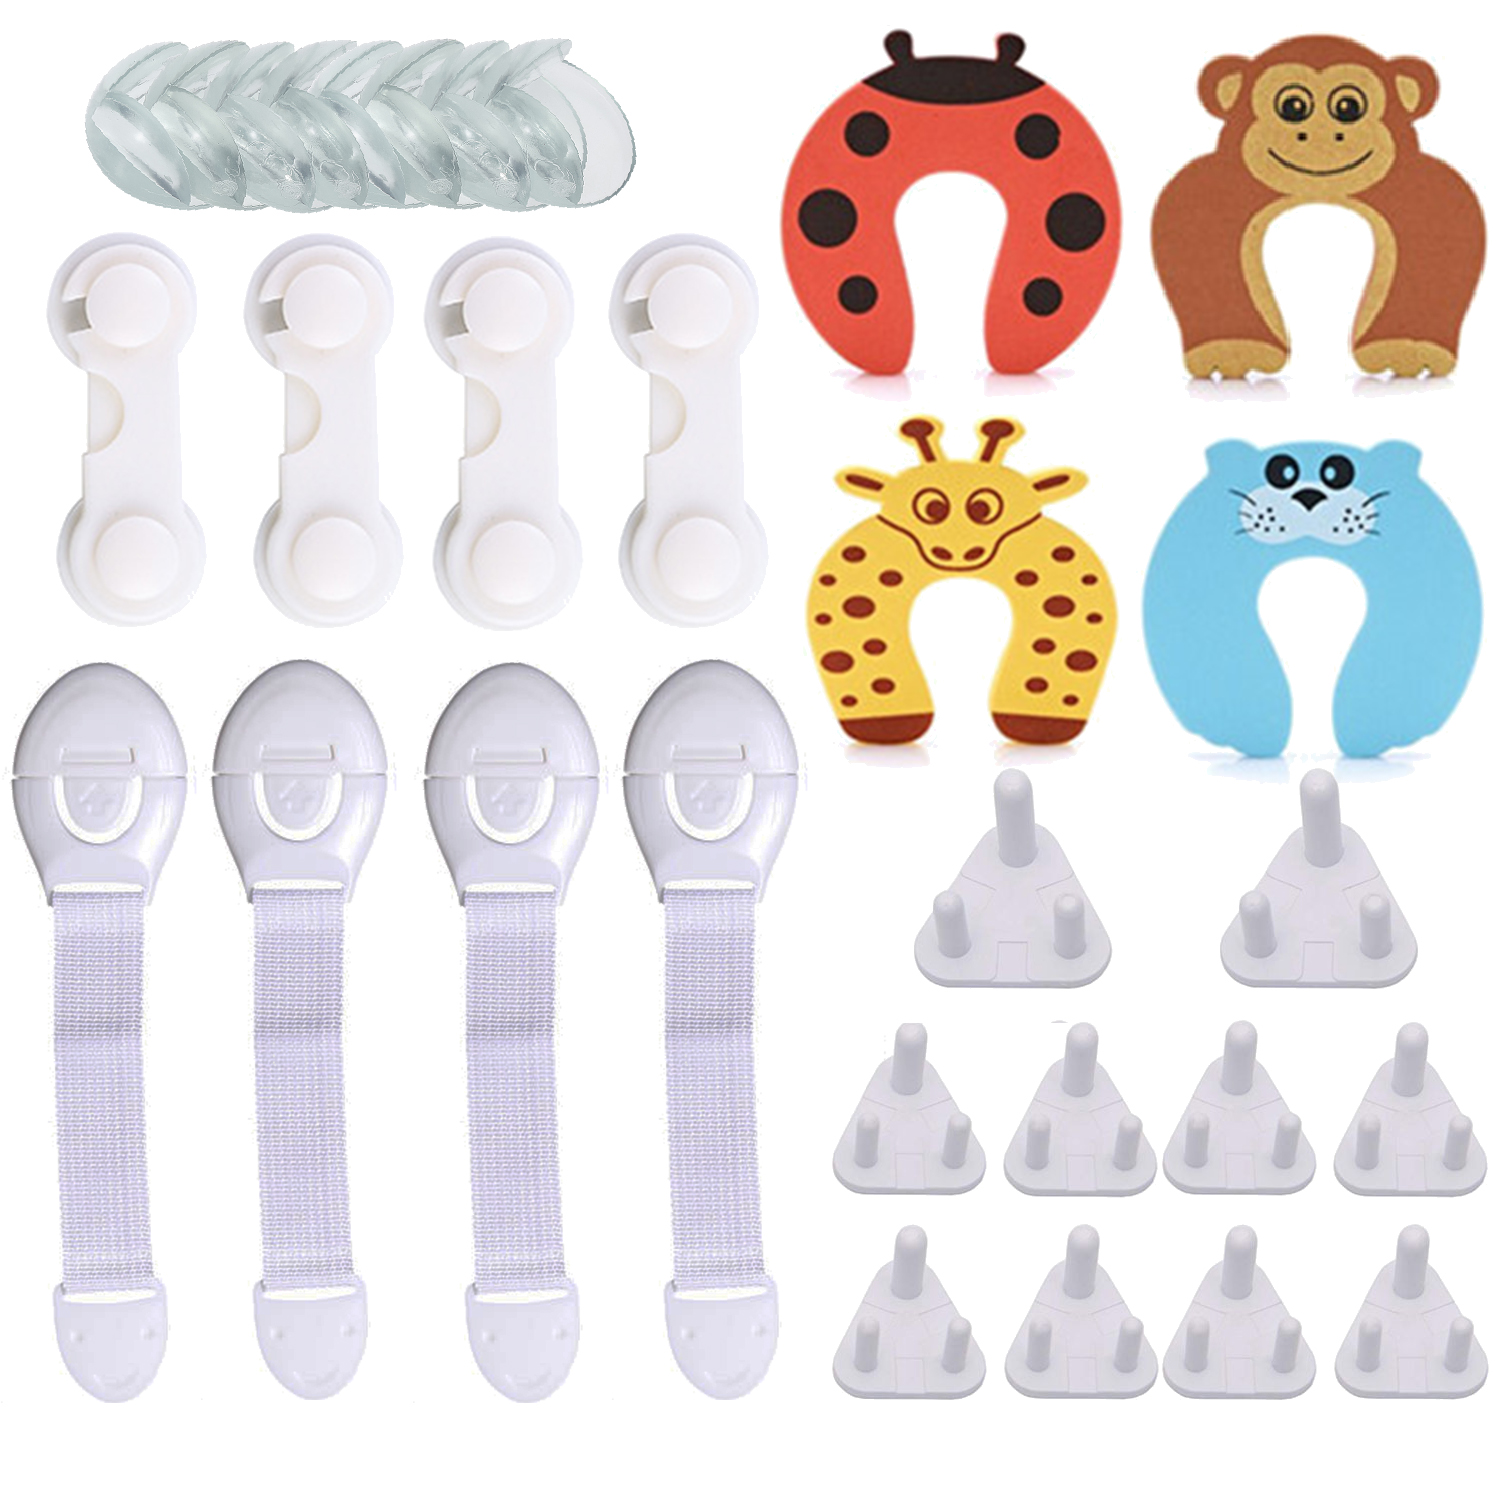 Childproofing products <strong>baby</strong> safety lock set table corner